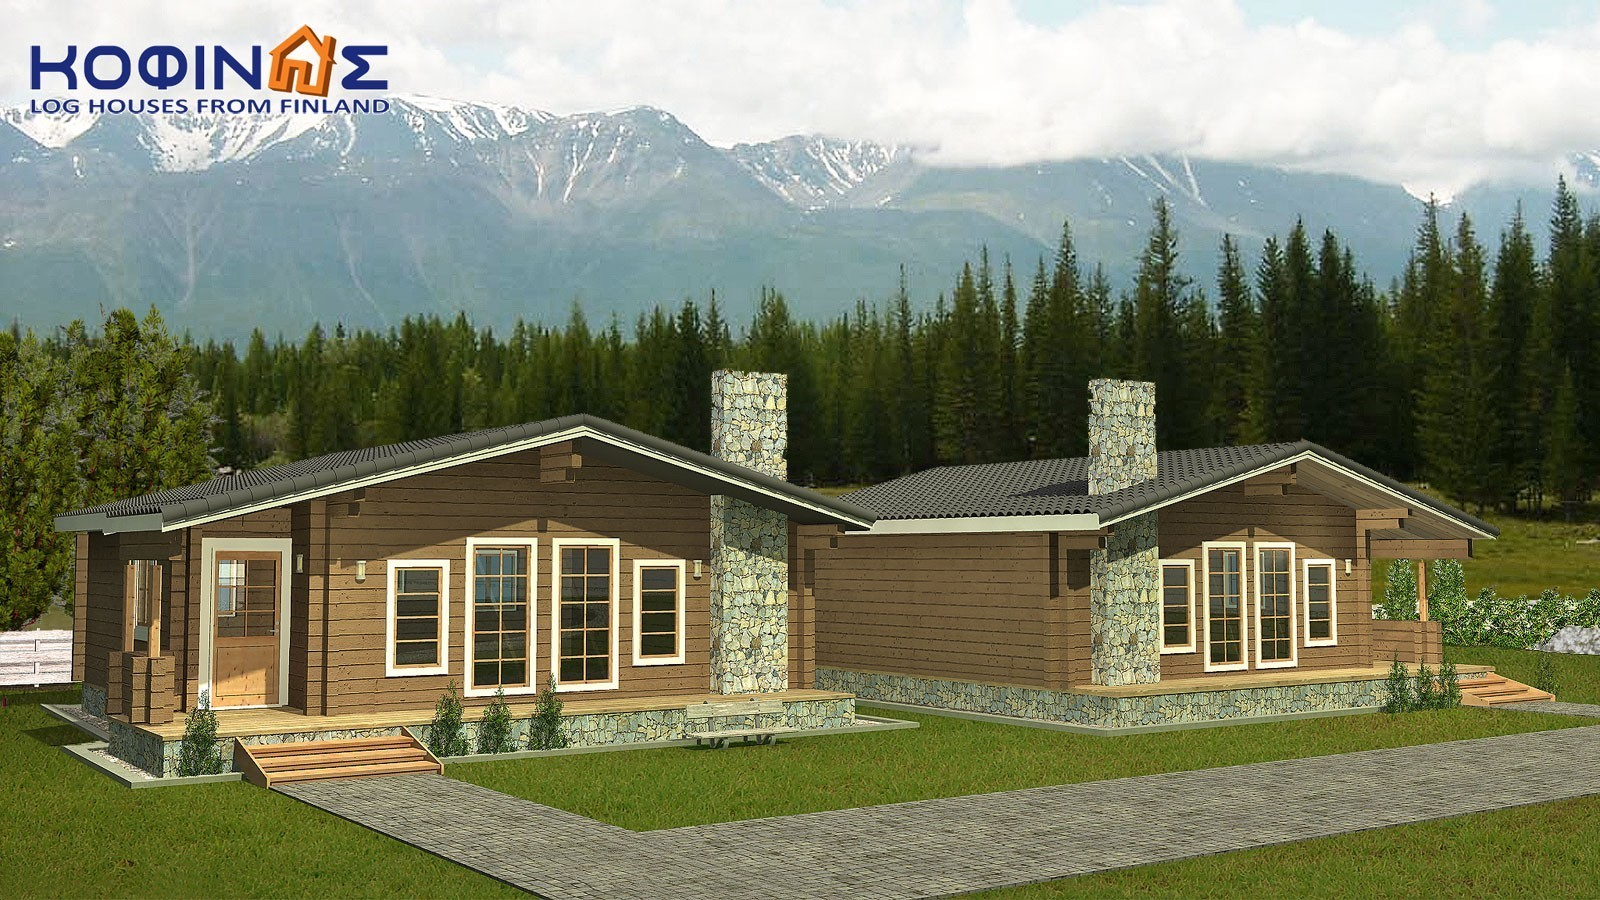 Complex of 2 log houses XI-71, habitable space of 2 x 71 = 142,00 m²